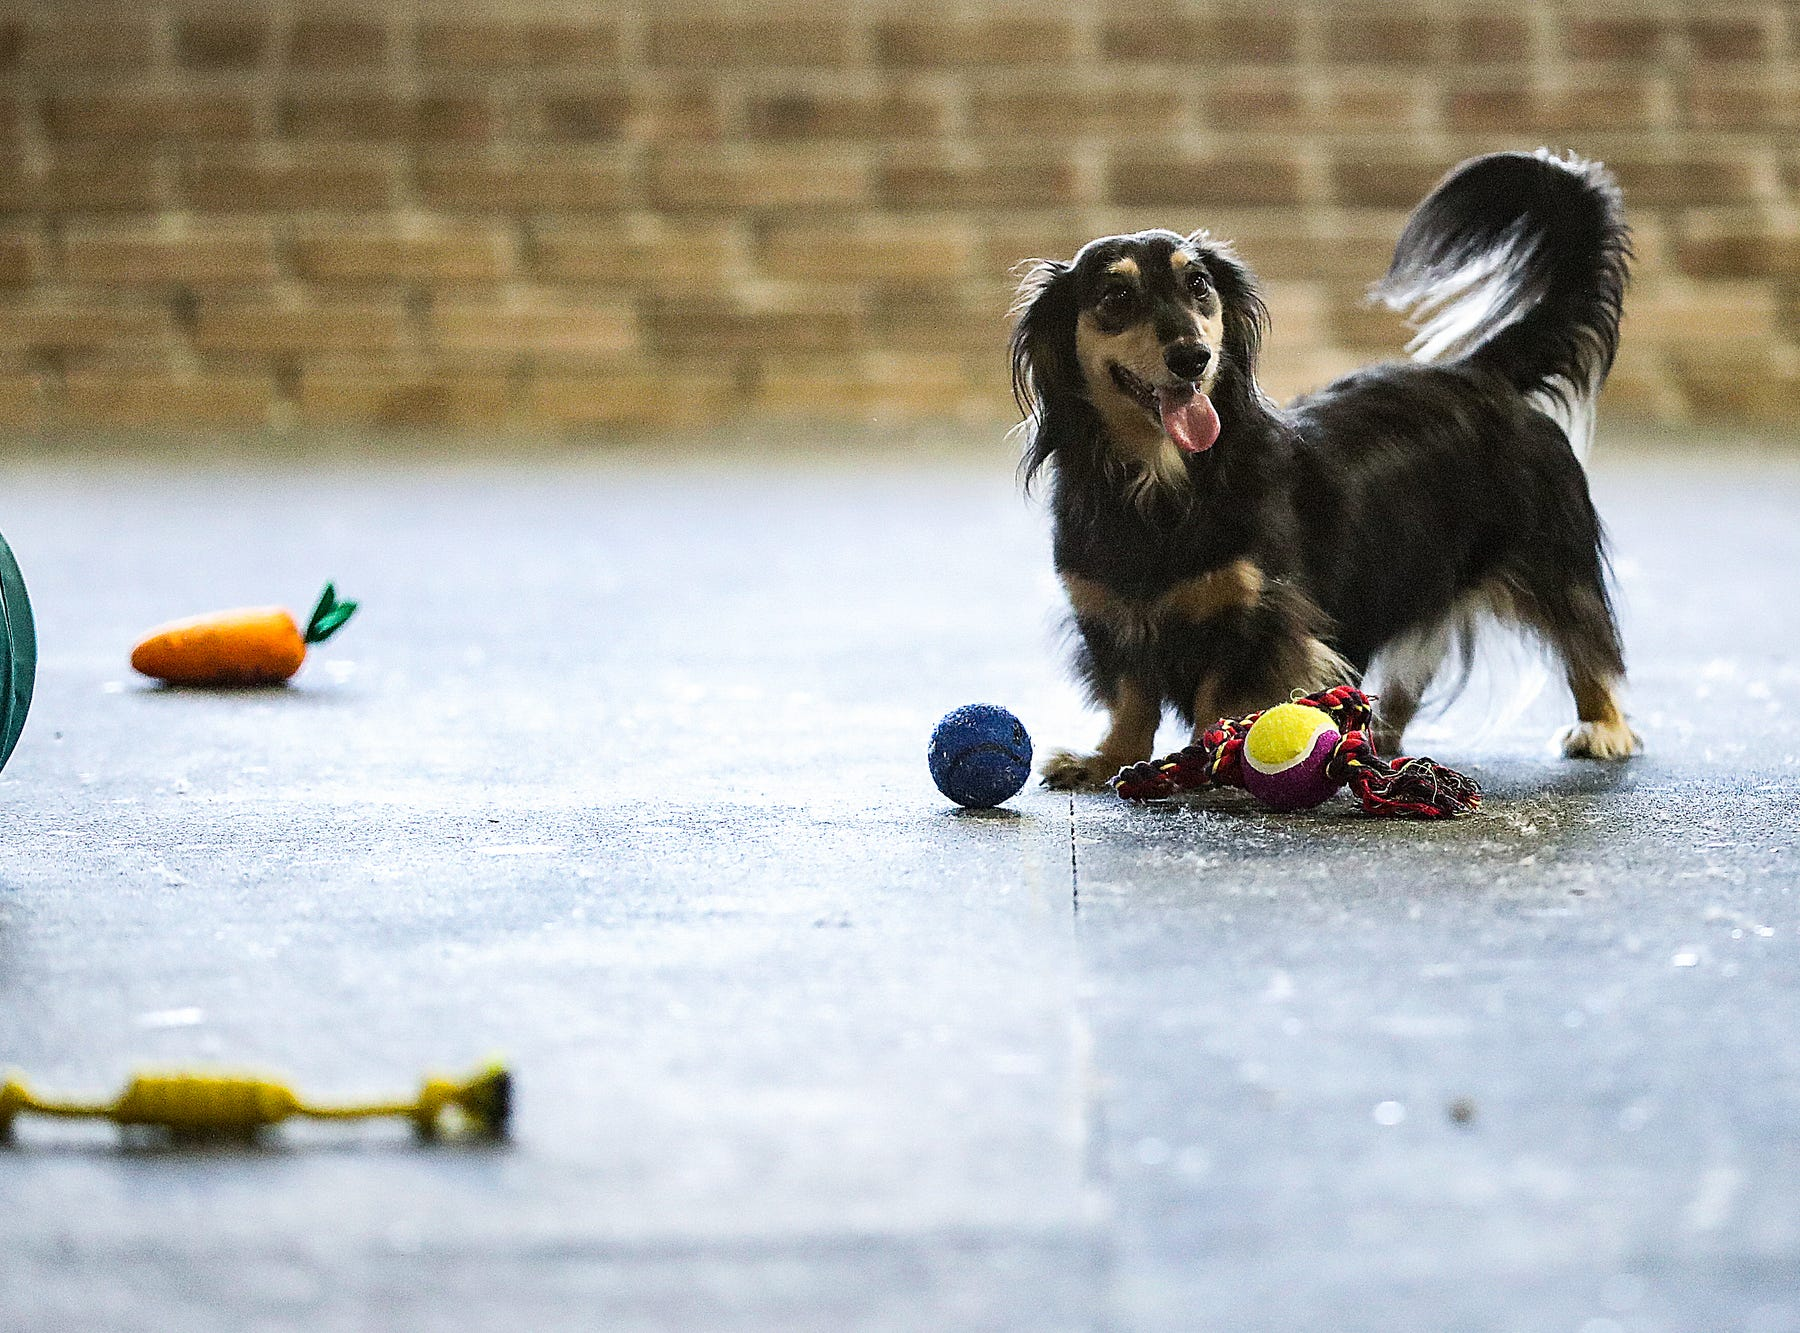 A dachshund named Opie plays in the small dog area, during the grand opening of Indy's Indoor Bark Park in Indianapolis, Saturday, Jan, 5, 2019. The large indoor space offers owners a place to exercise their dogs regardless of the weather. Membership options include single-day, multi-day and annual passes.